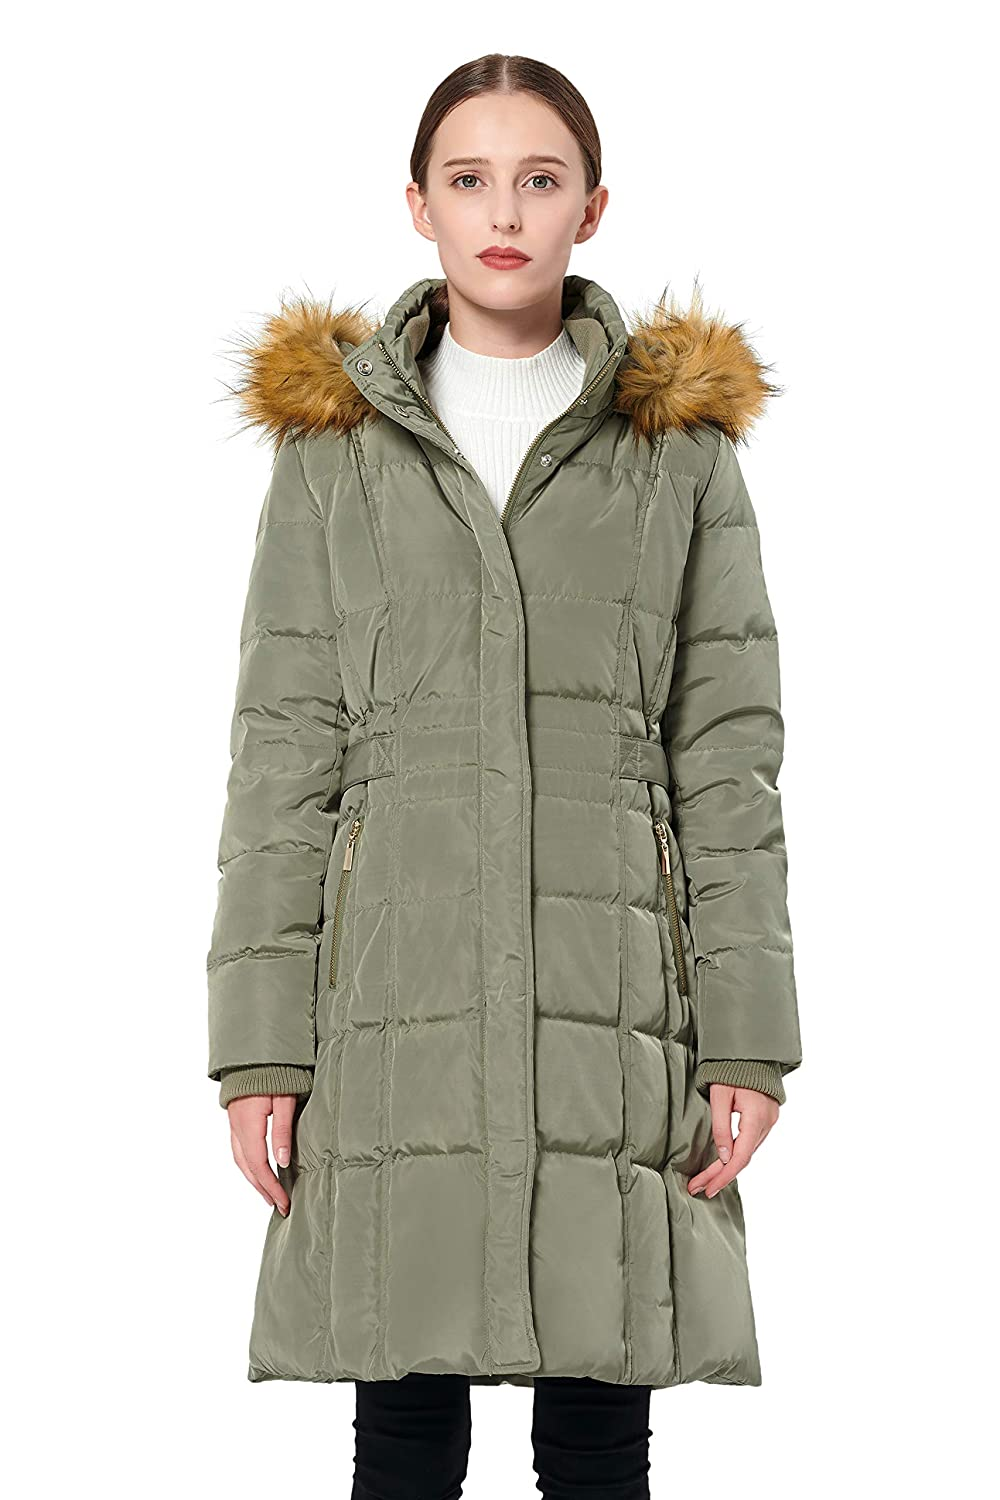 Orolay Womens Puffer Down Coat Winter Jacket with Faux Fur Trim Hood